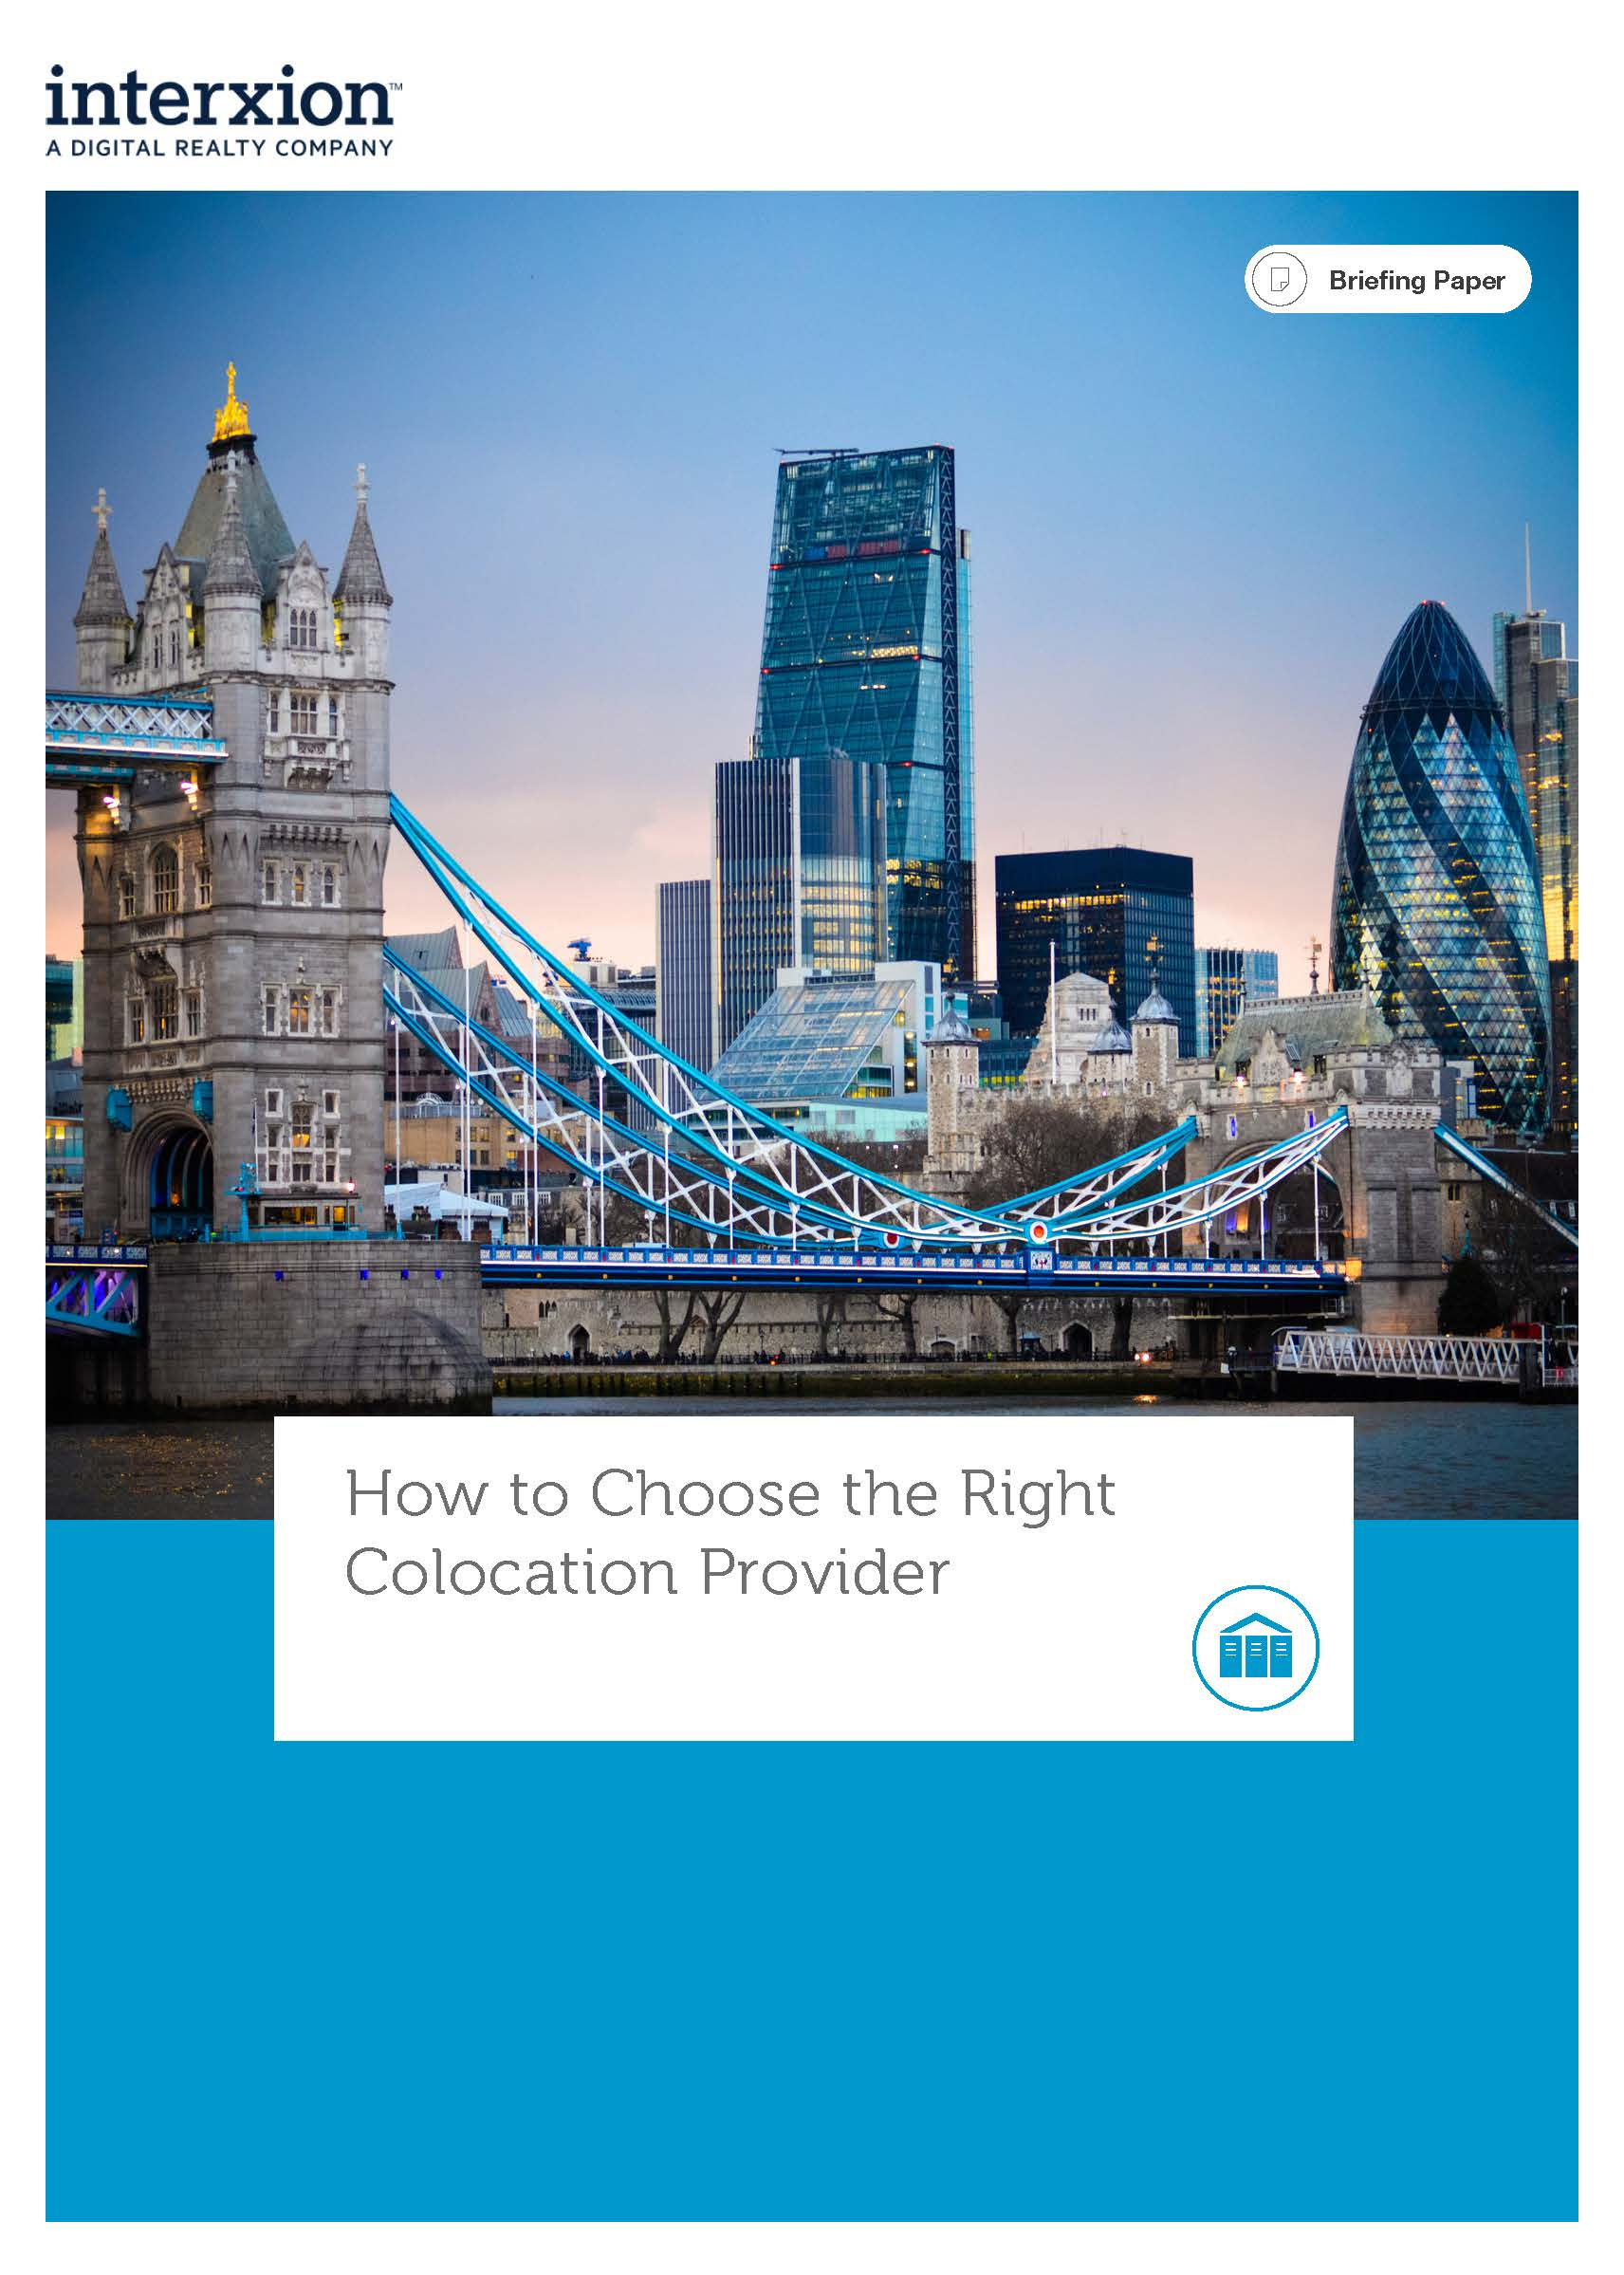 How to choose the right colocation provider thumbnail